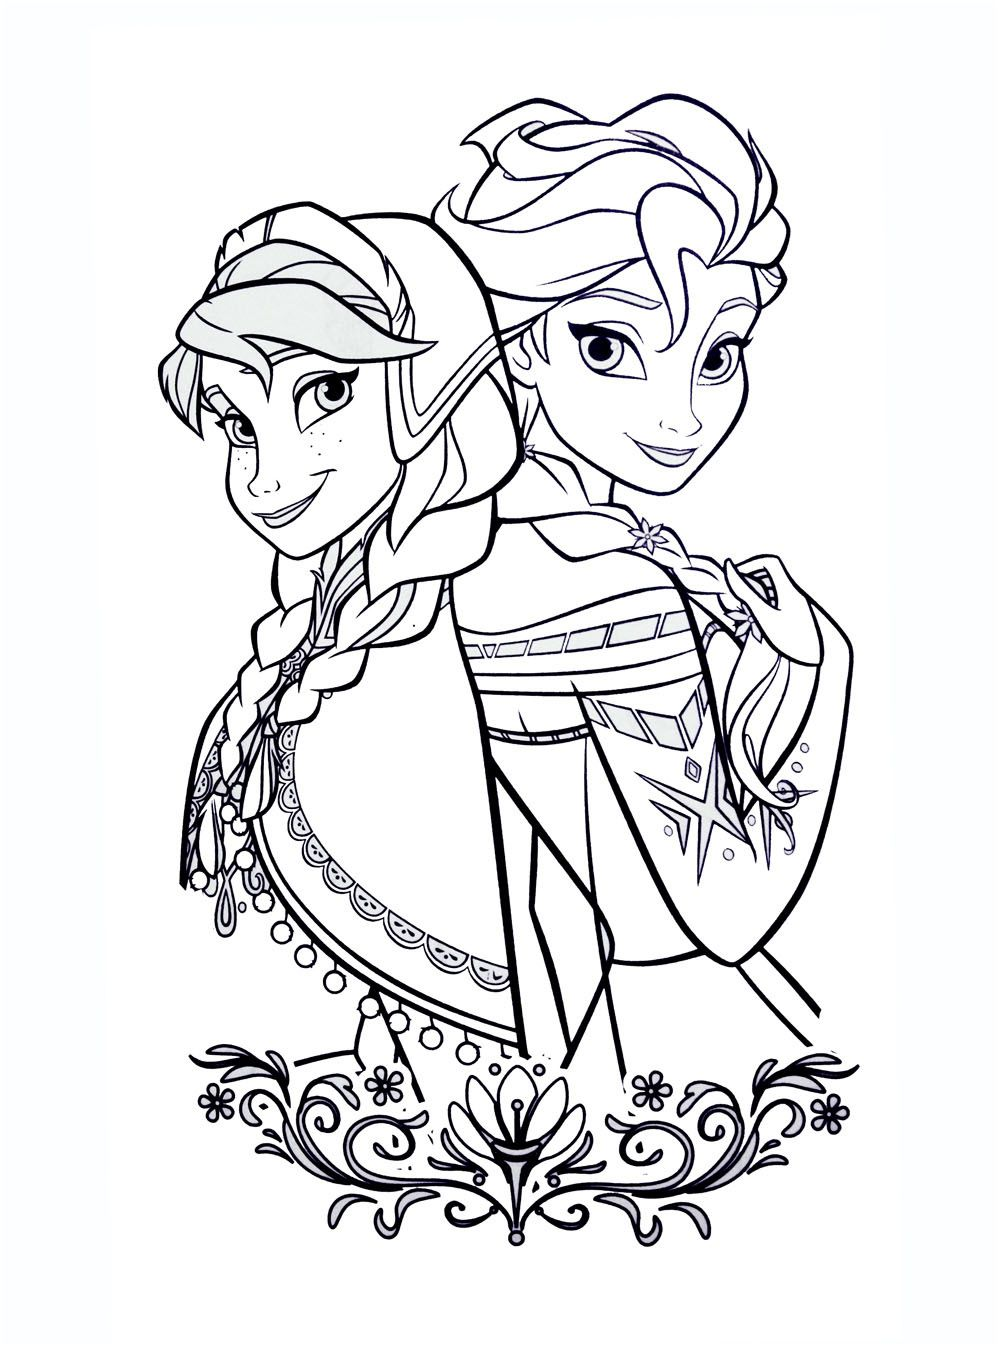 10 Authentique Coloriage Disney Reine Des Neiges Collection Elsa